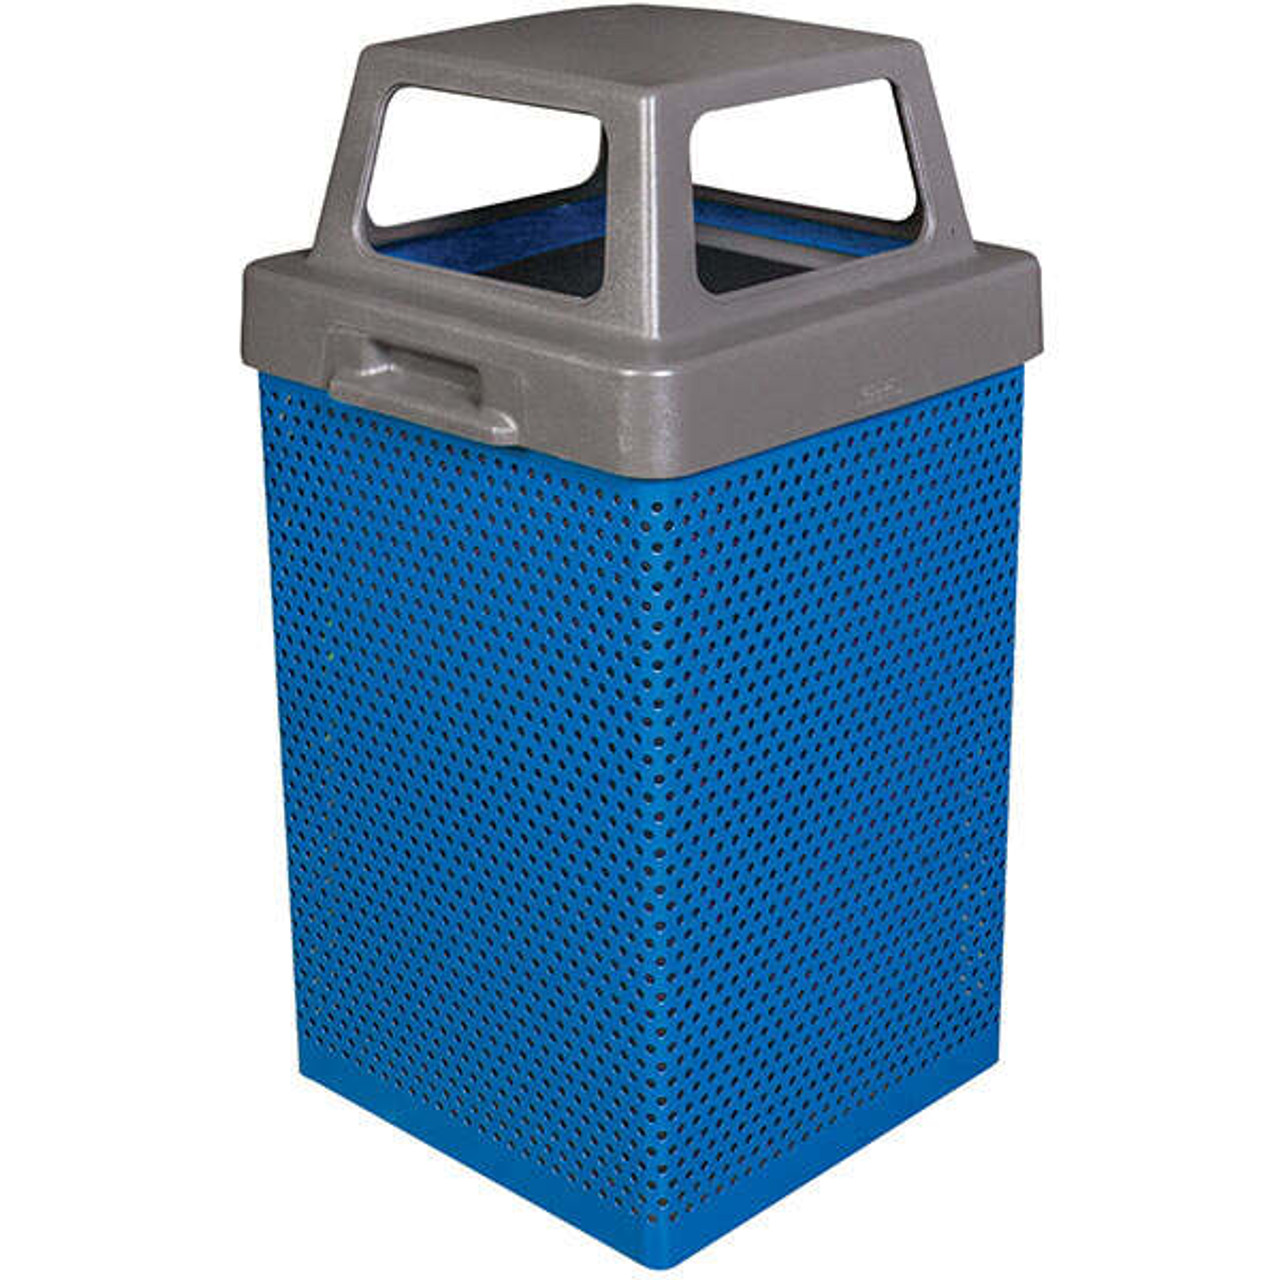 38 Gallon Metal Armor Outdoor Waste Container MF3053